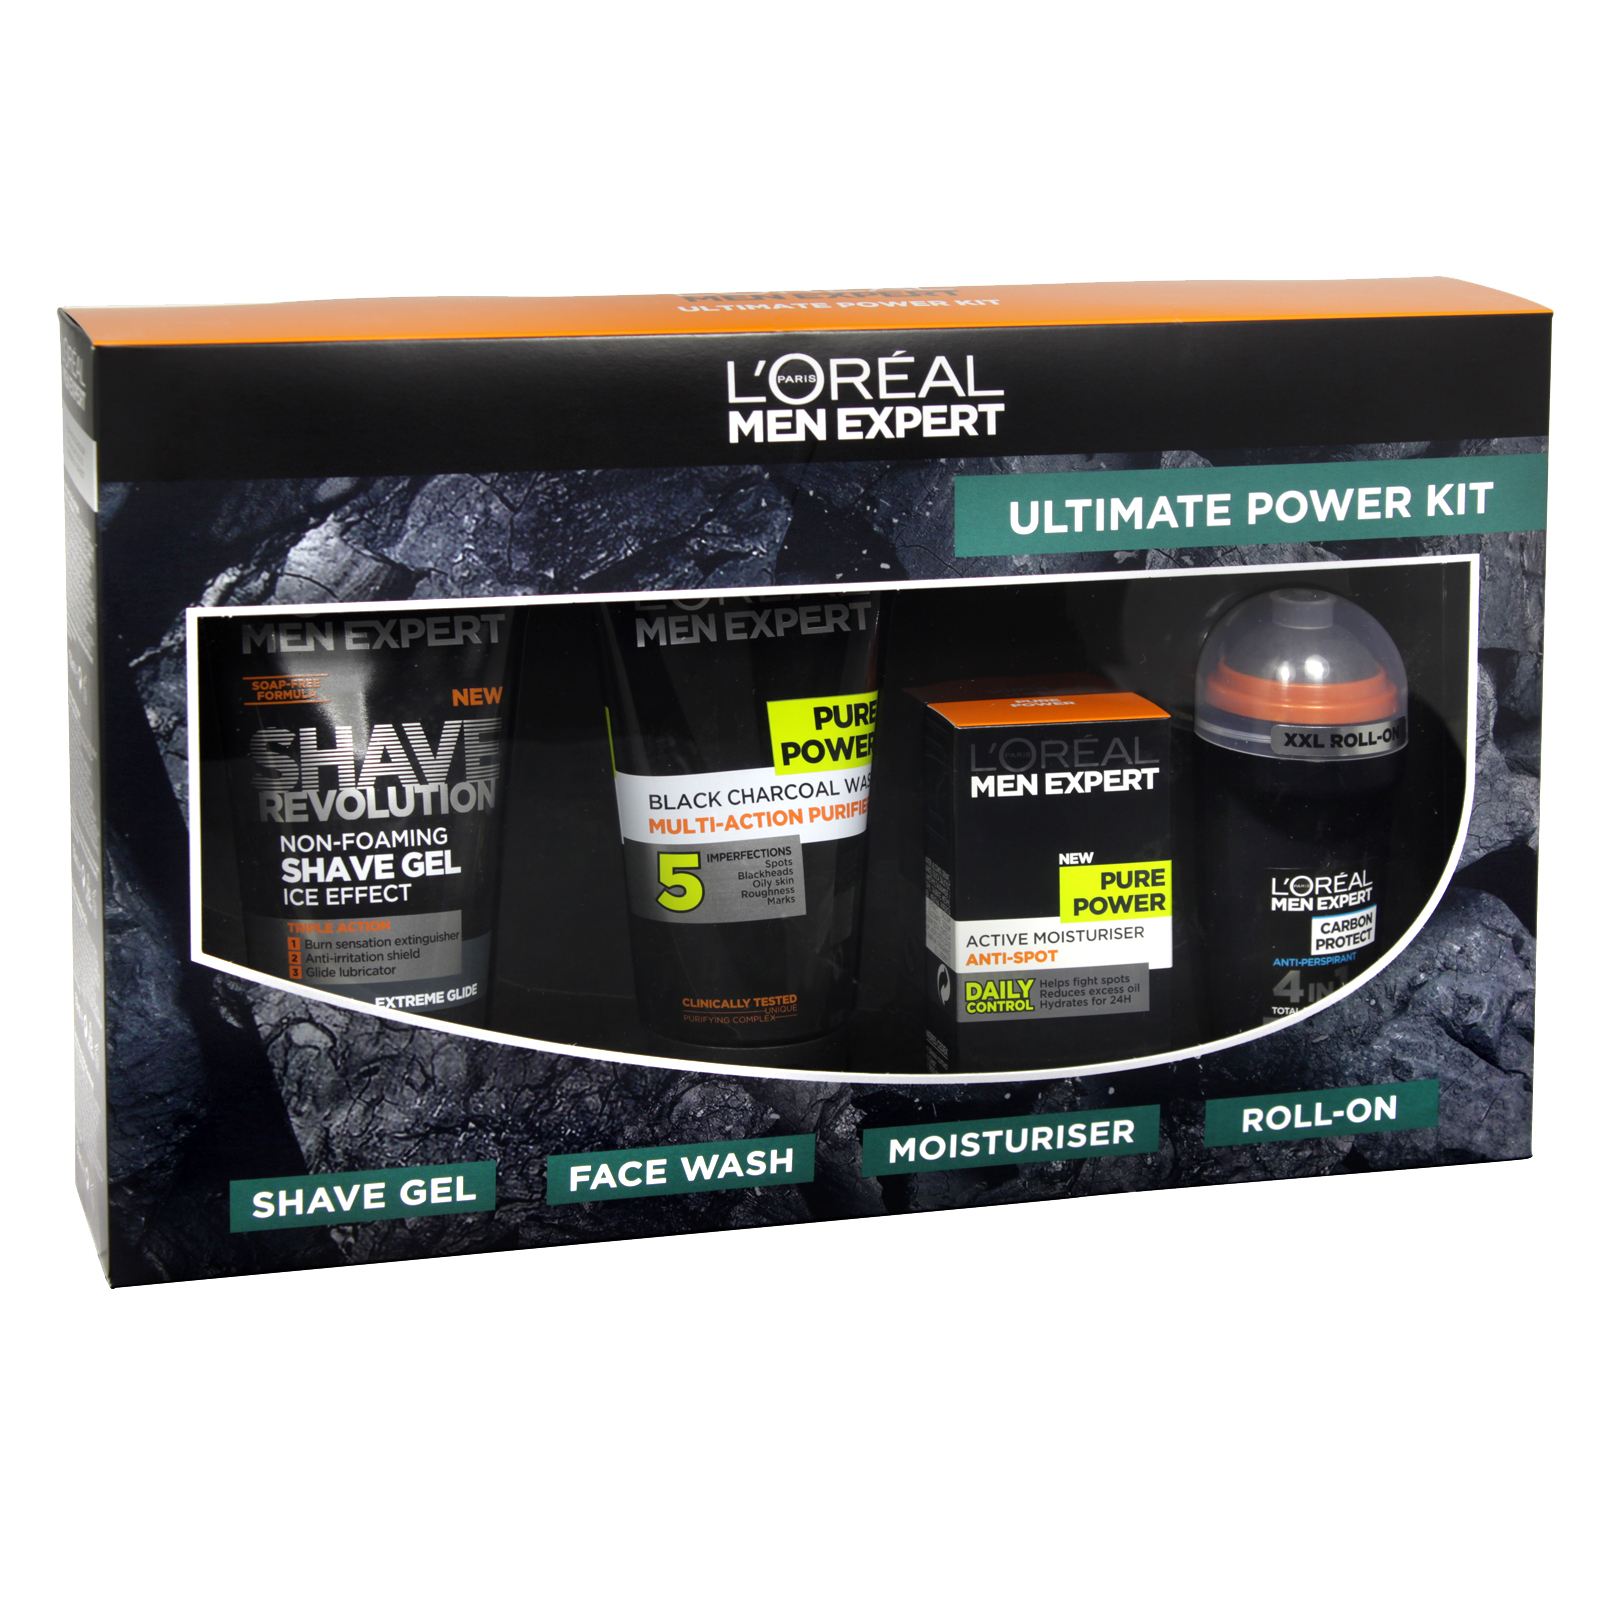 LOREAL MEN EXPERT ULTIMATE 50ML MOIST+50ML ROLL-ON+150ML F/WASH+150ML SHAVE GEL